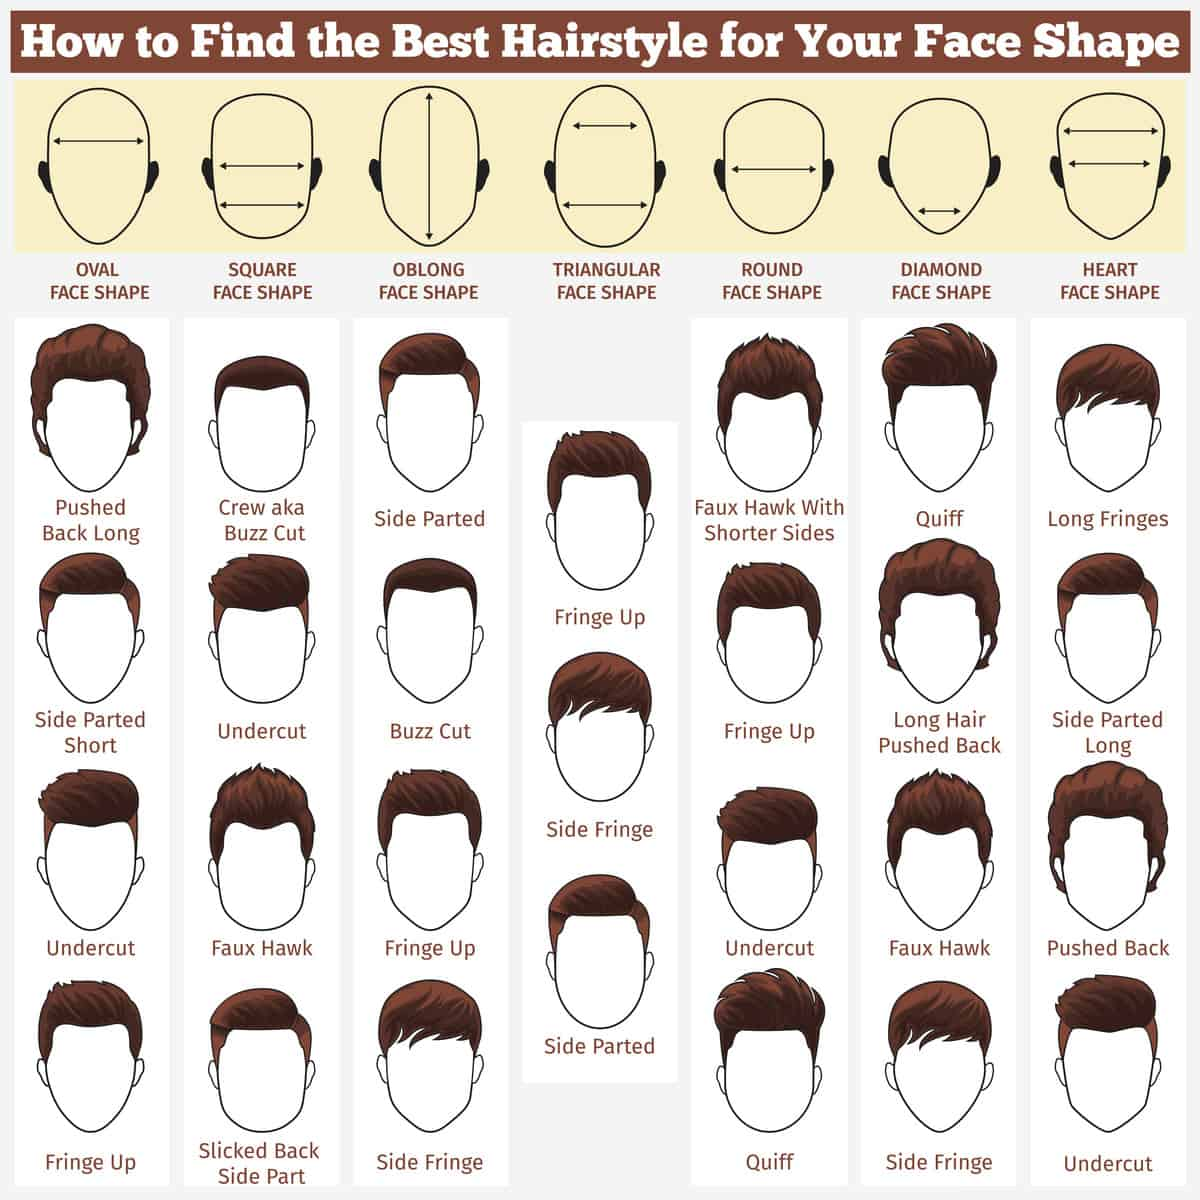 Chart of best men's hairstyles and cuts by face shape